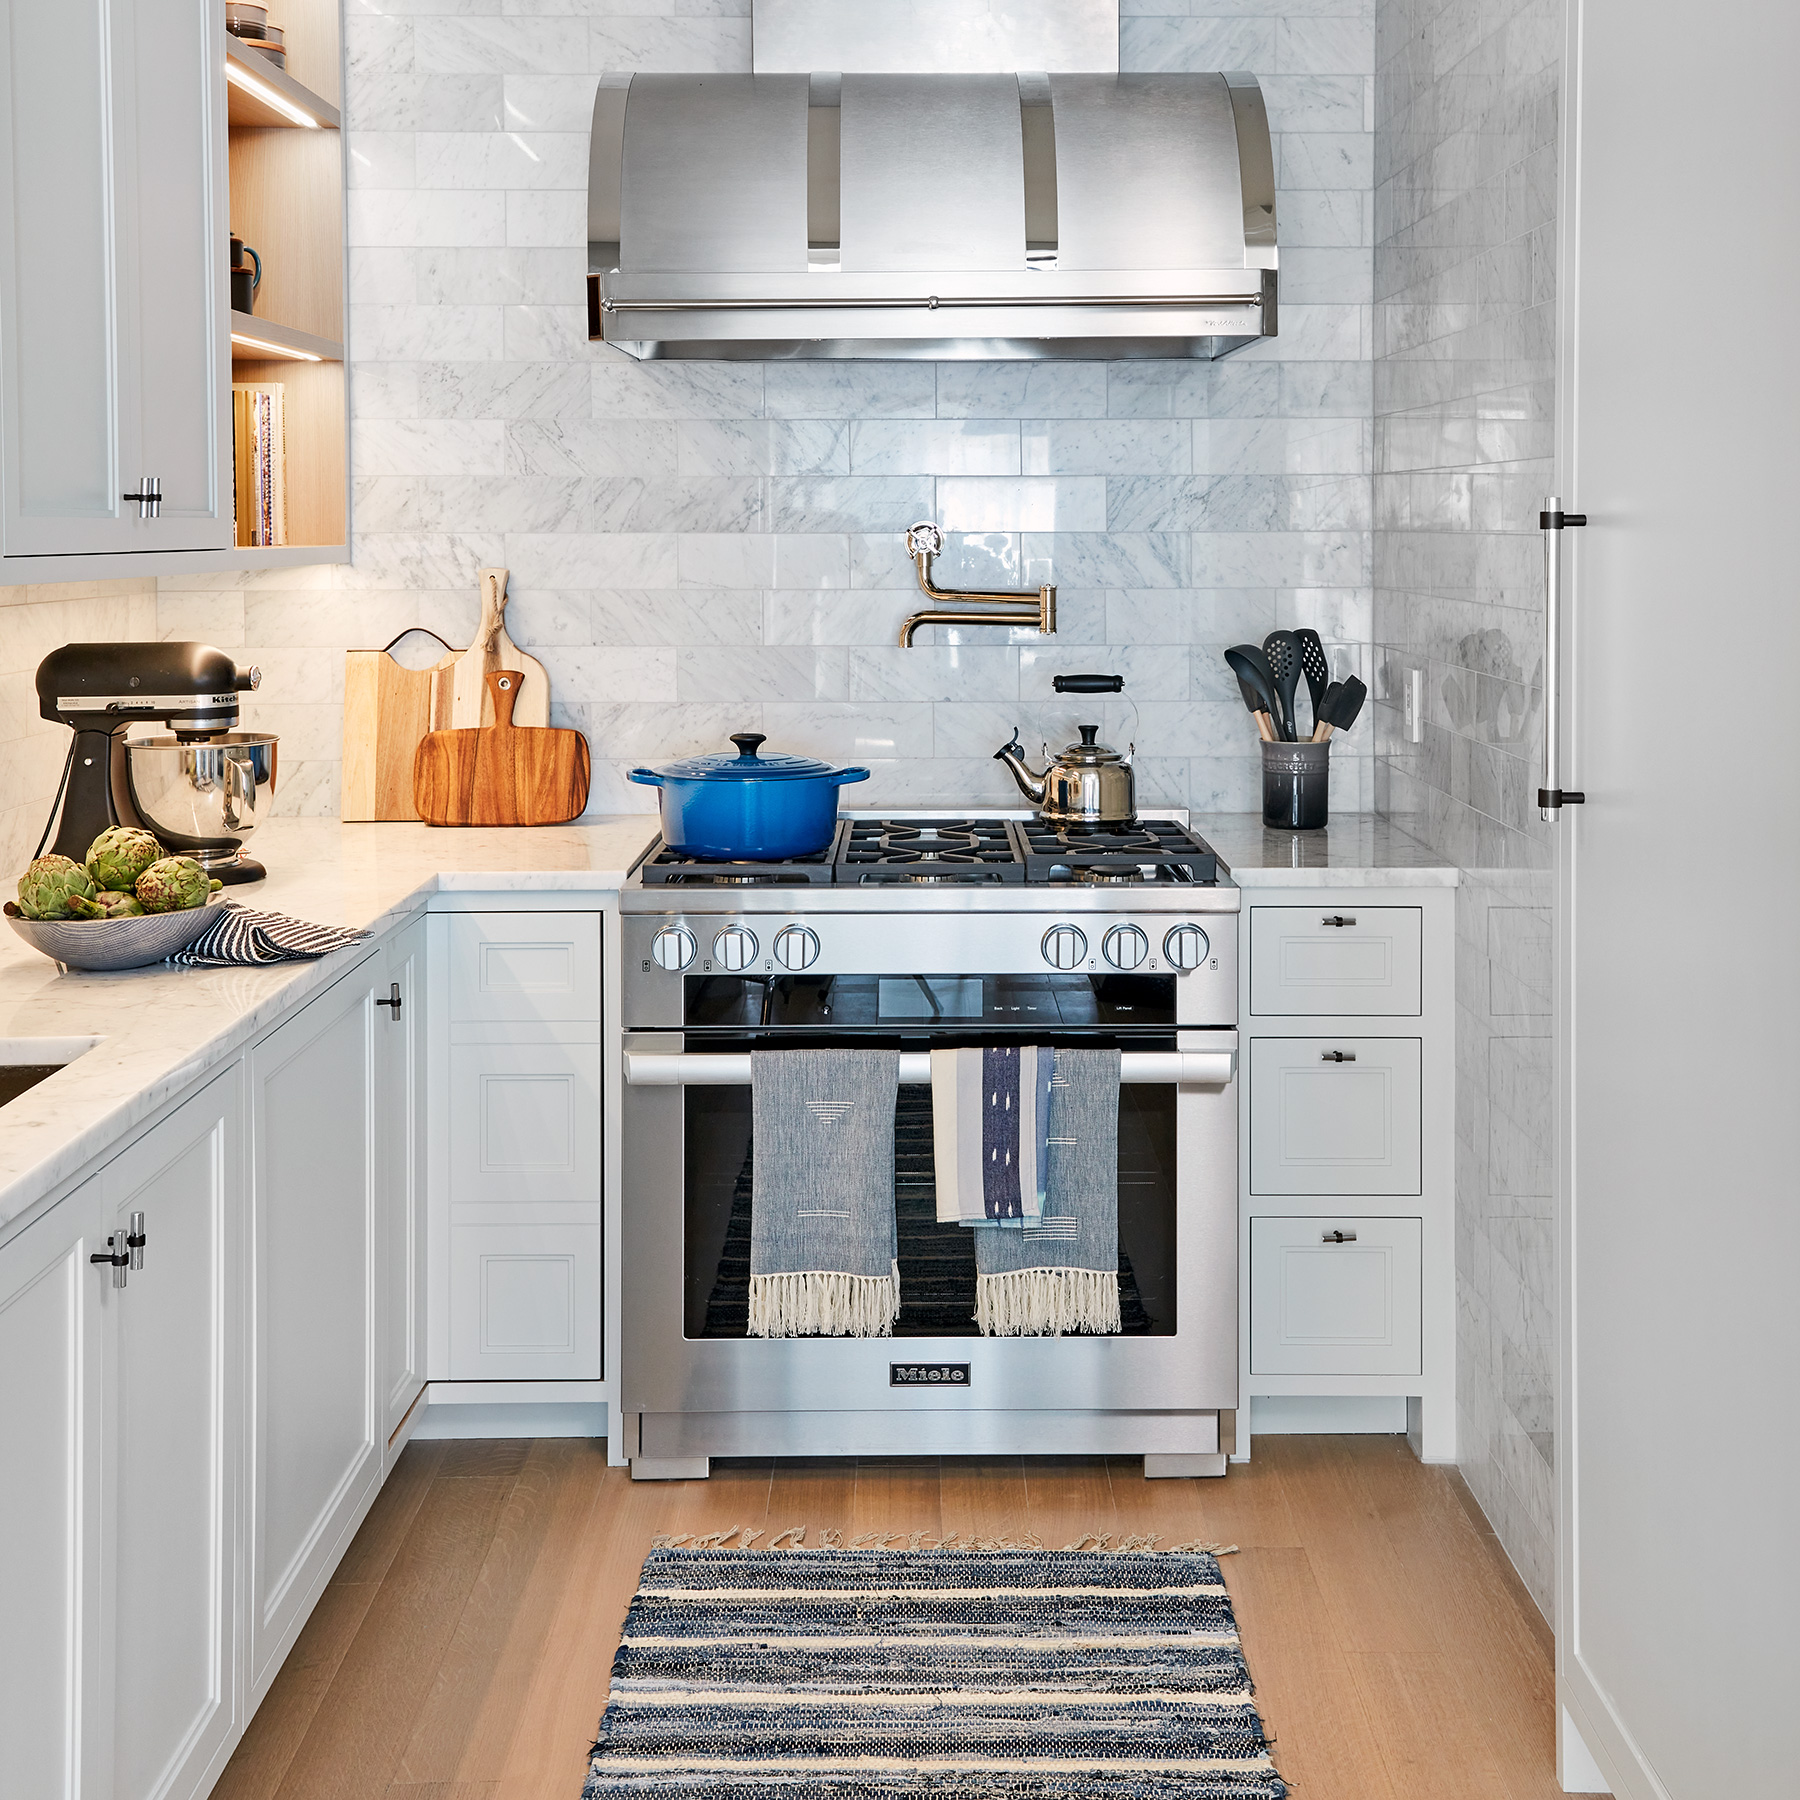 2020 Real Simple Home Tour: Kitchen